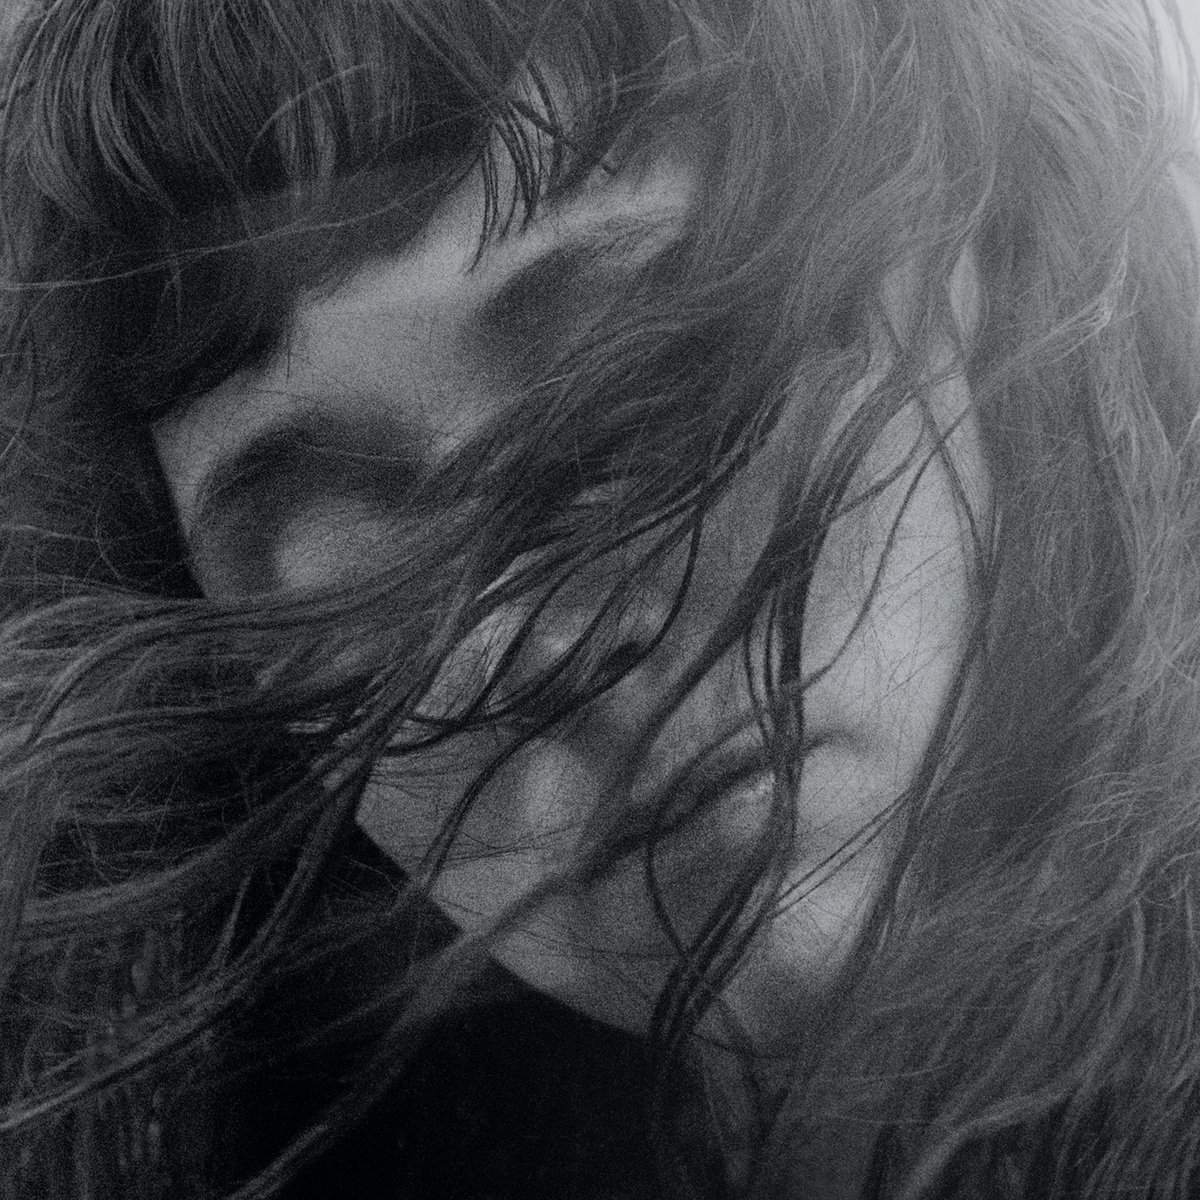 Waxahatchee In the Storm